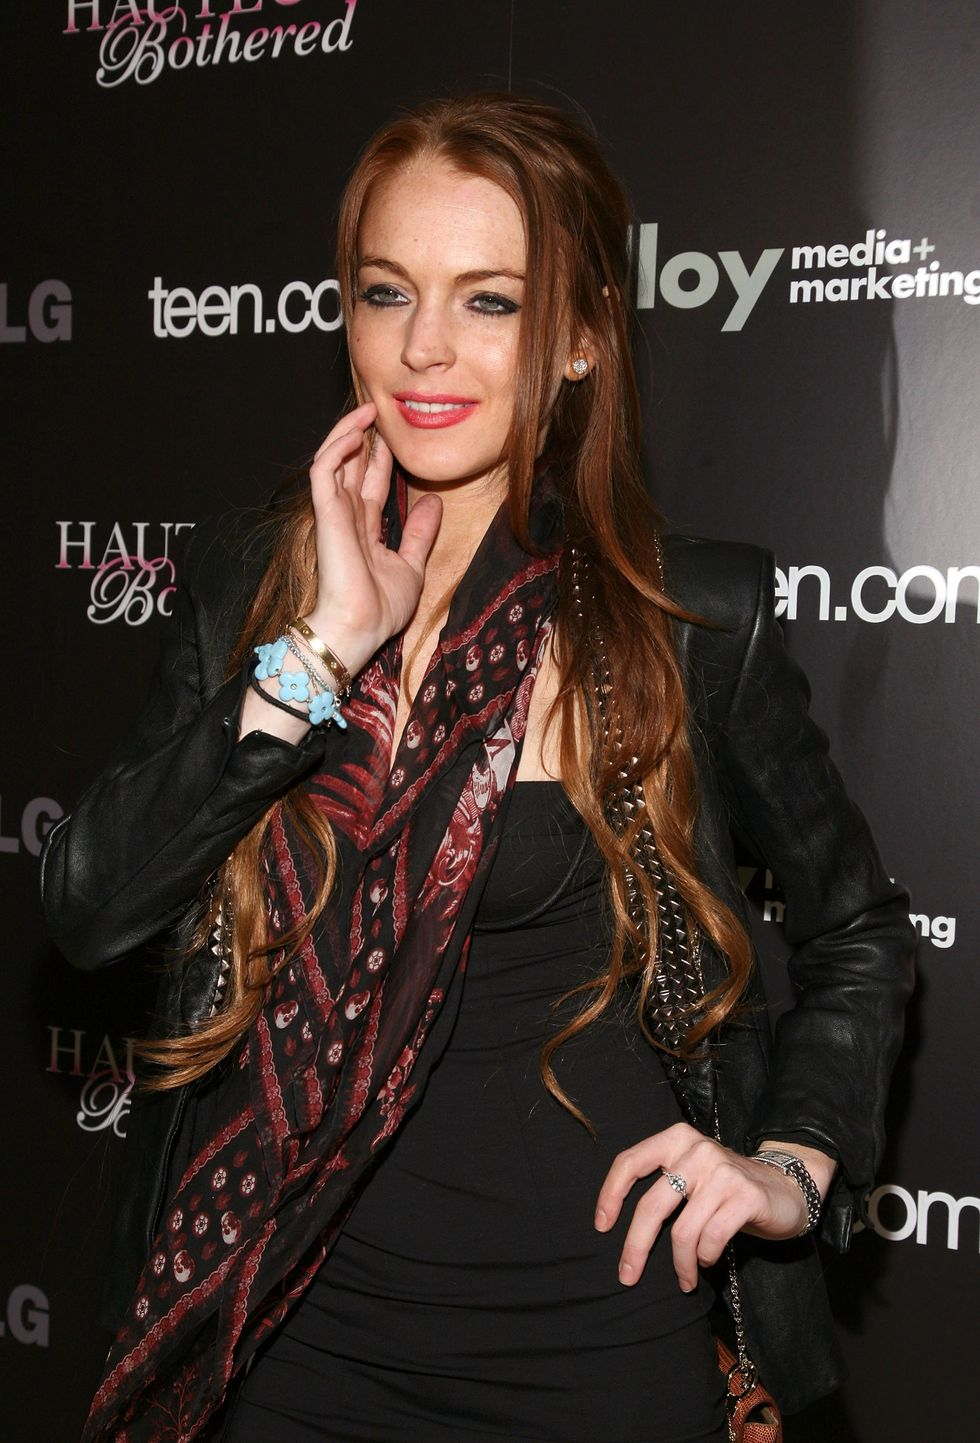 lindsay-lohan-haute-and-bothered-launch-party-in-hollywood-04